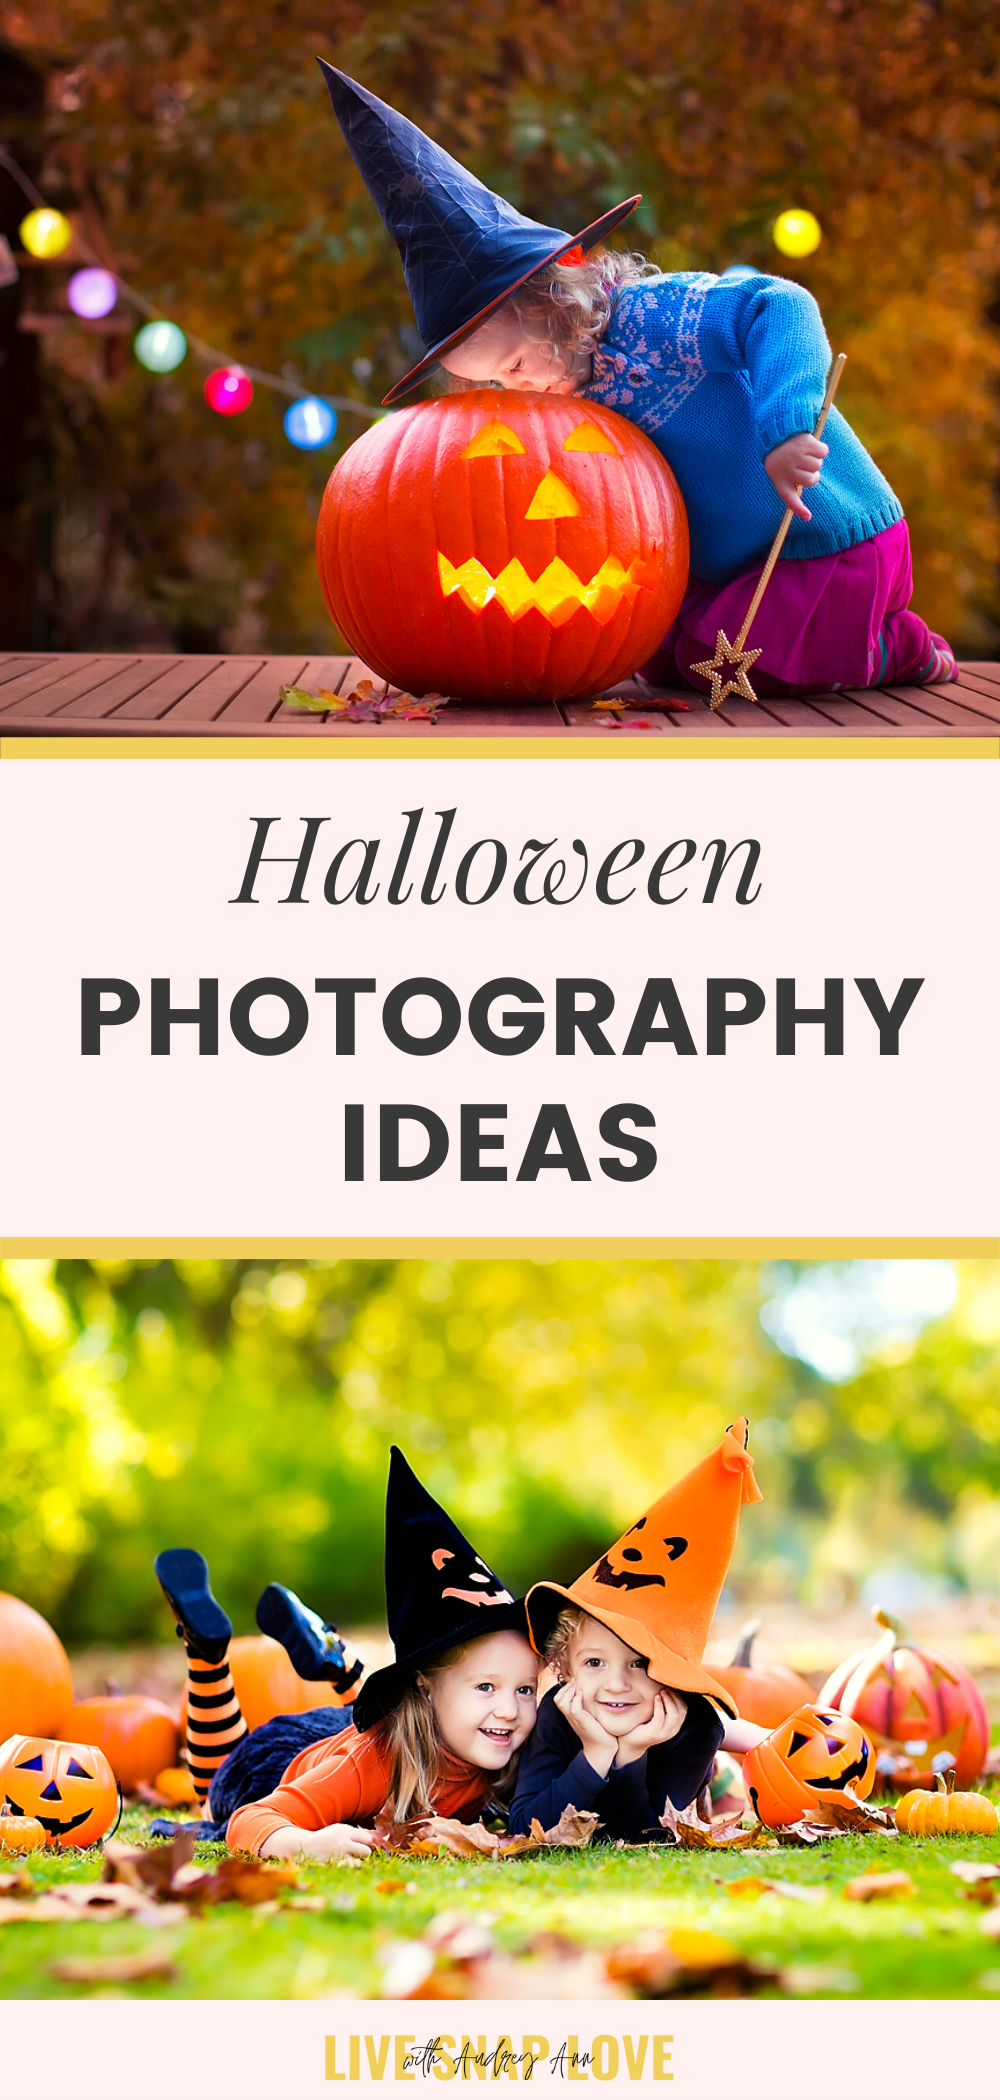 Take amazing halloween photos this year with these halloween photography tips and ideas!